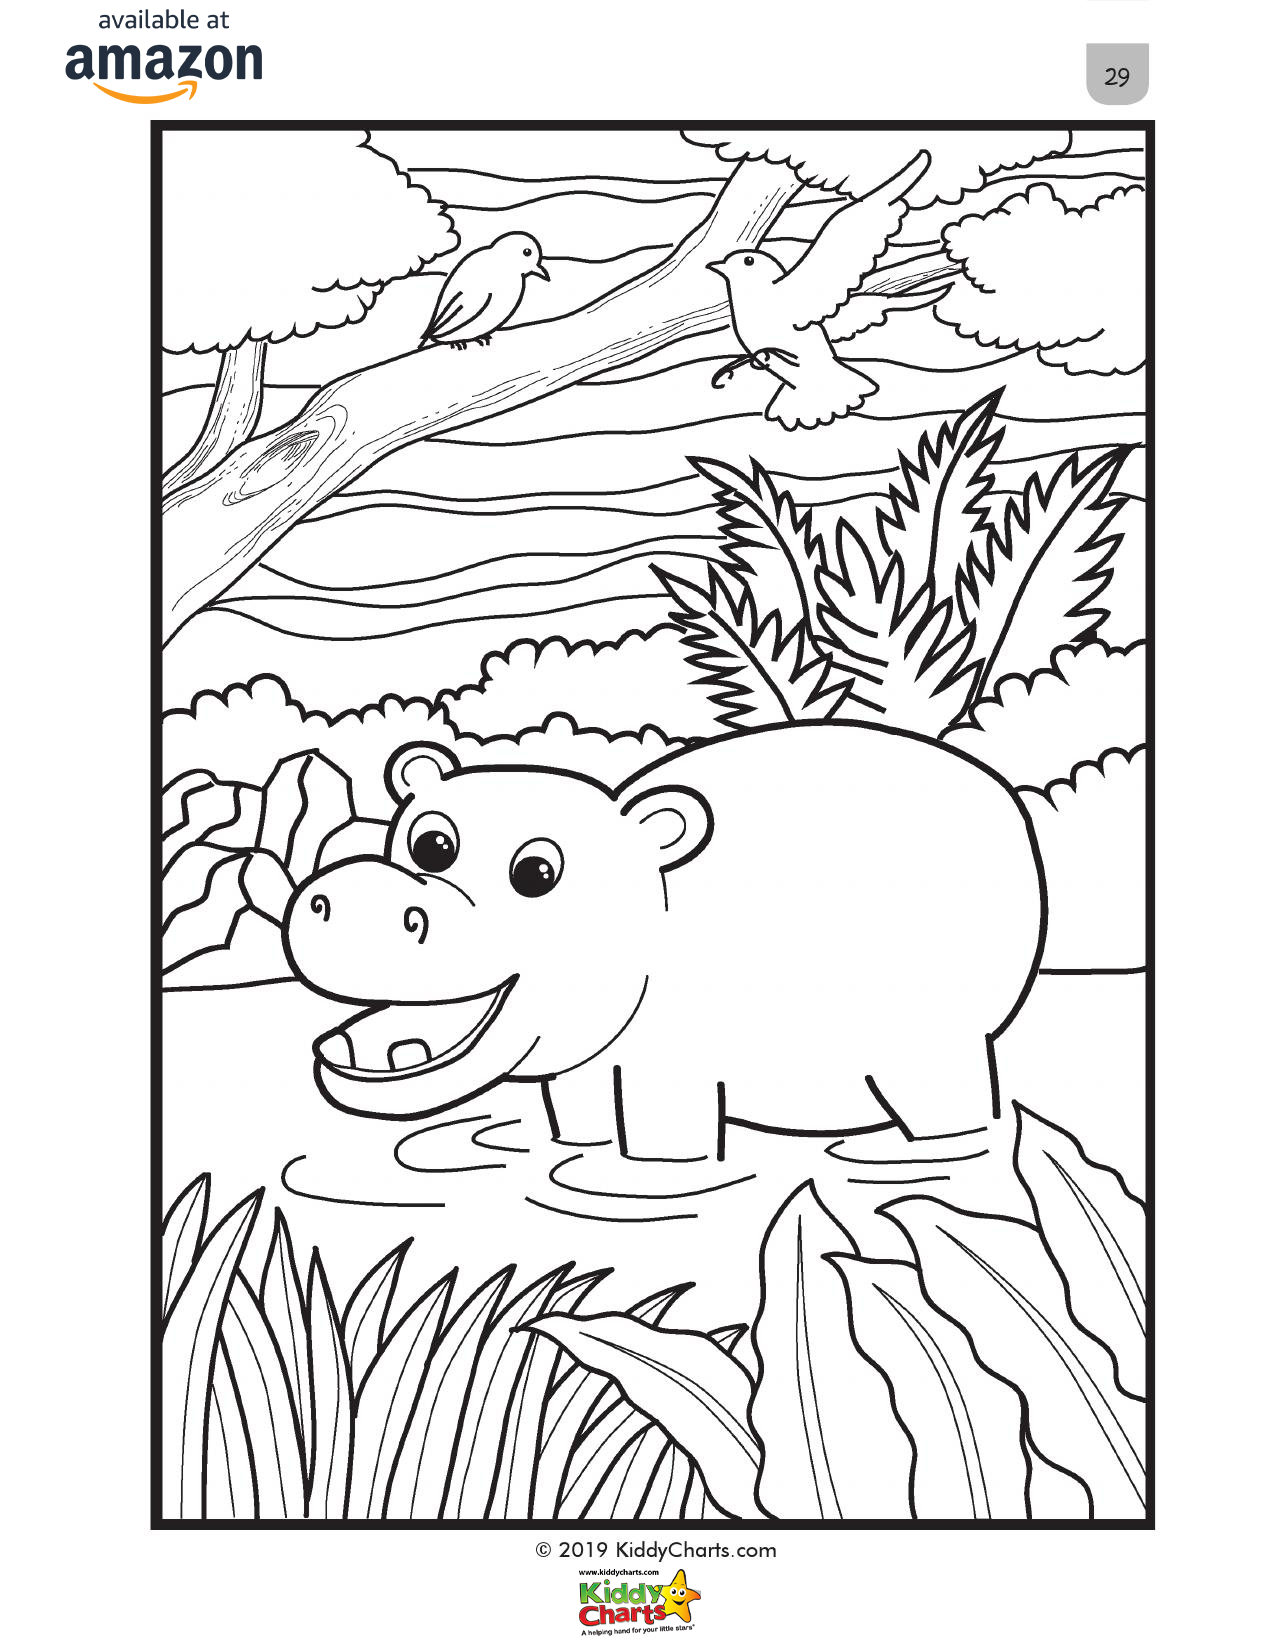 Our Hippo mindful coloring page for kids, part of our mindful coloring book. Get this for free and check out the rest! #coloring #colouring #animals #kids #adultcoloring #kidscoloring #hippos #nature #coloringbook #coloringbooks #freestuff